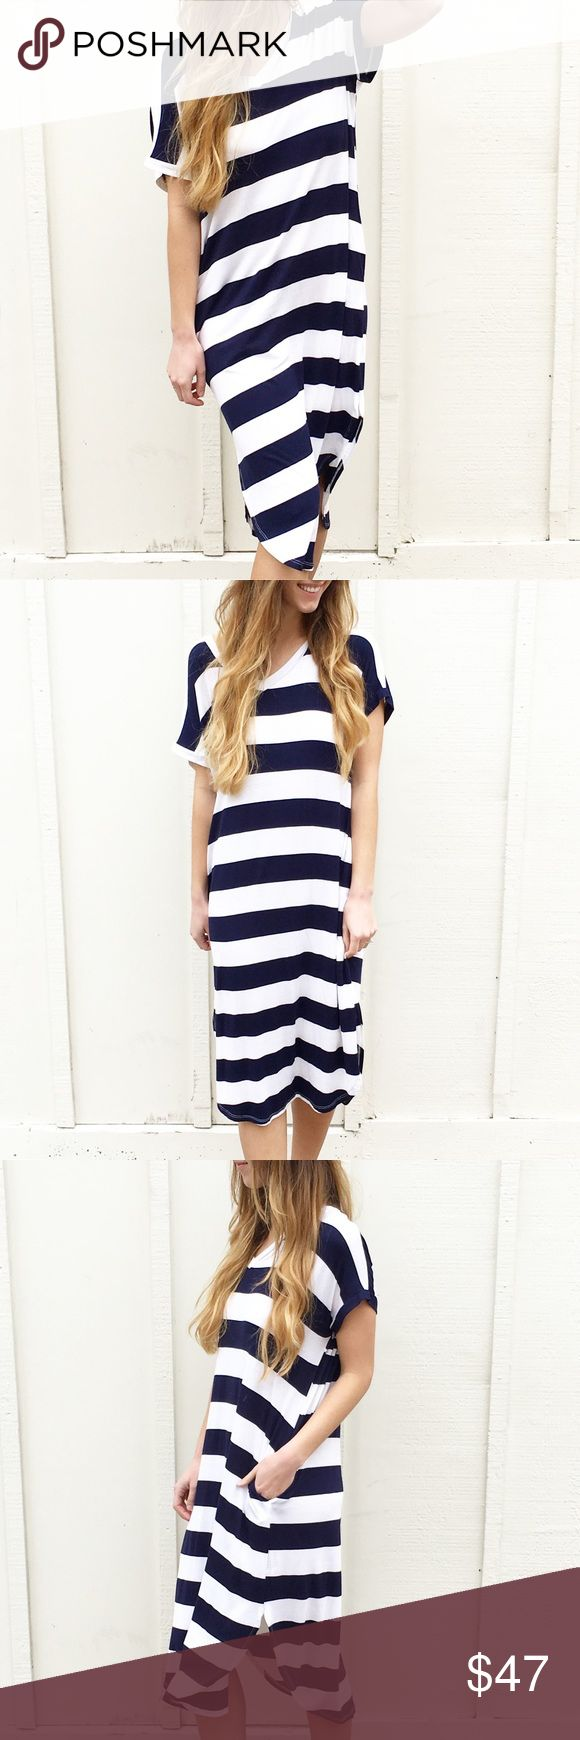 | new | oversized t shirt dress offers welcome new with tag navy and white striped t shirt dress with oversized fit and side pockets. •671497• Dresses Midi